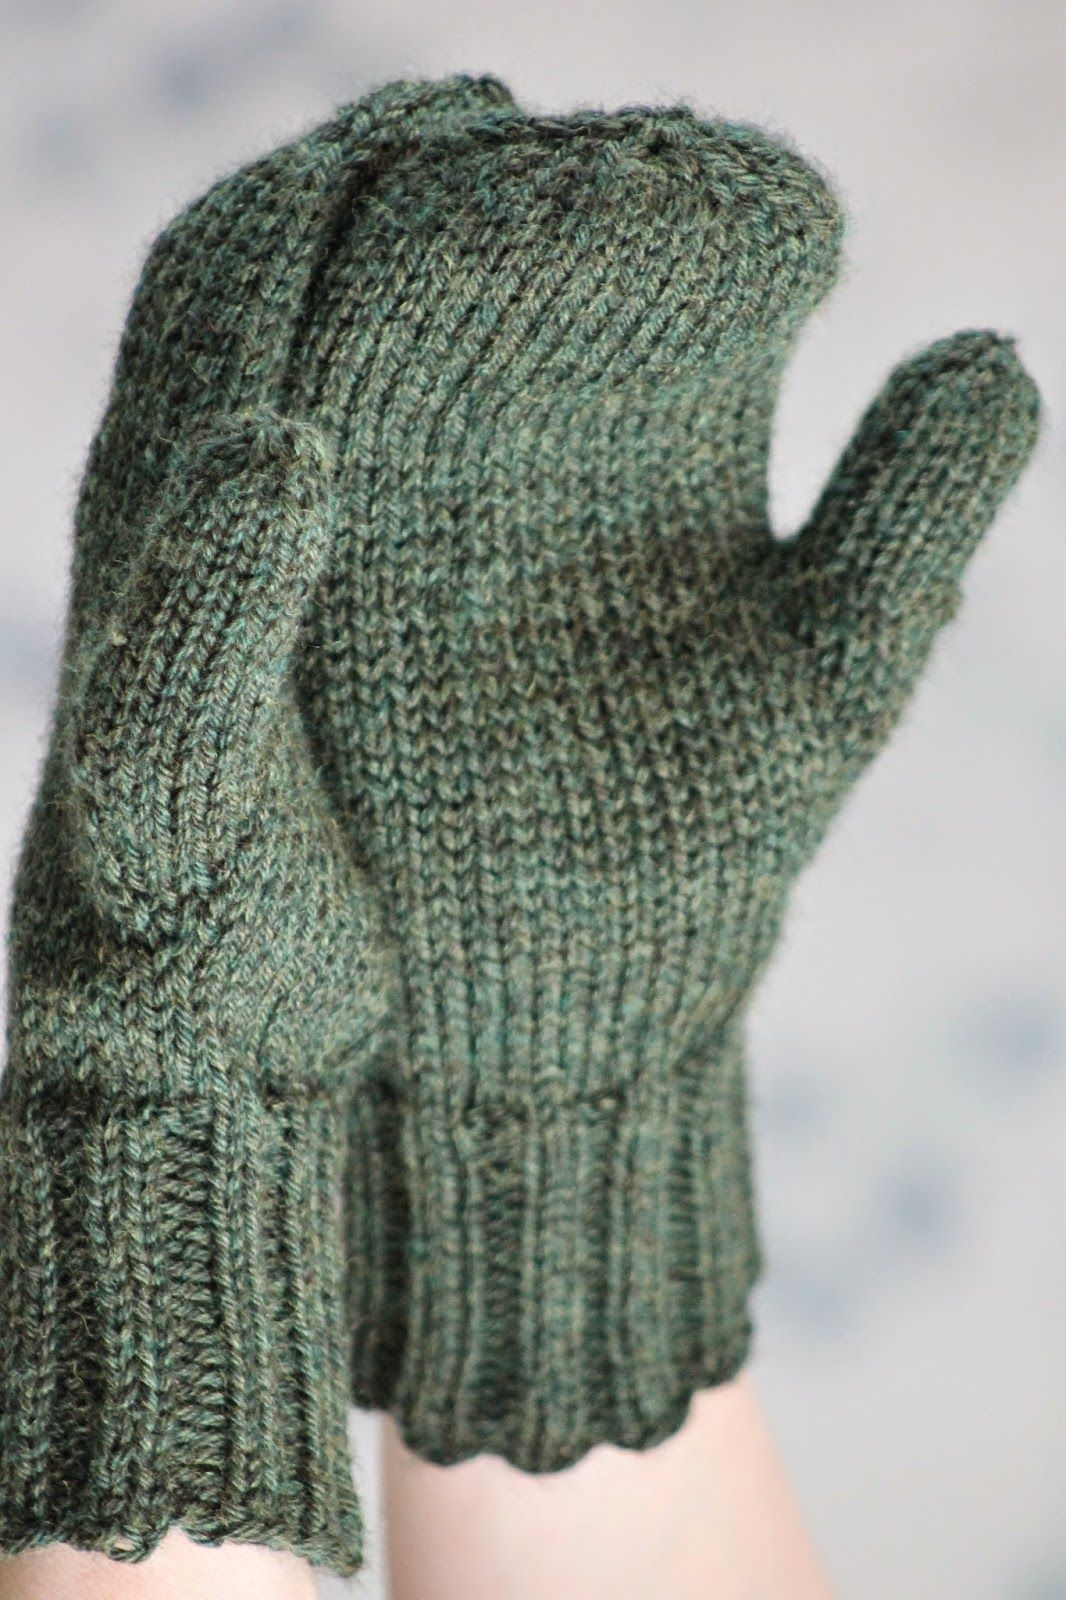 Doug Fir Mittens | Mittens, Firs and Knitting patterns